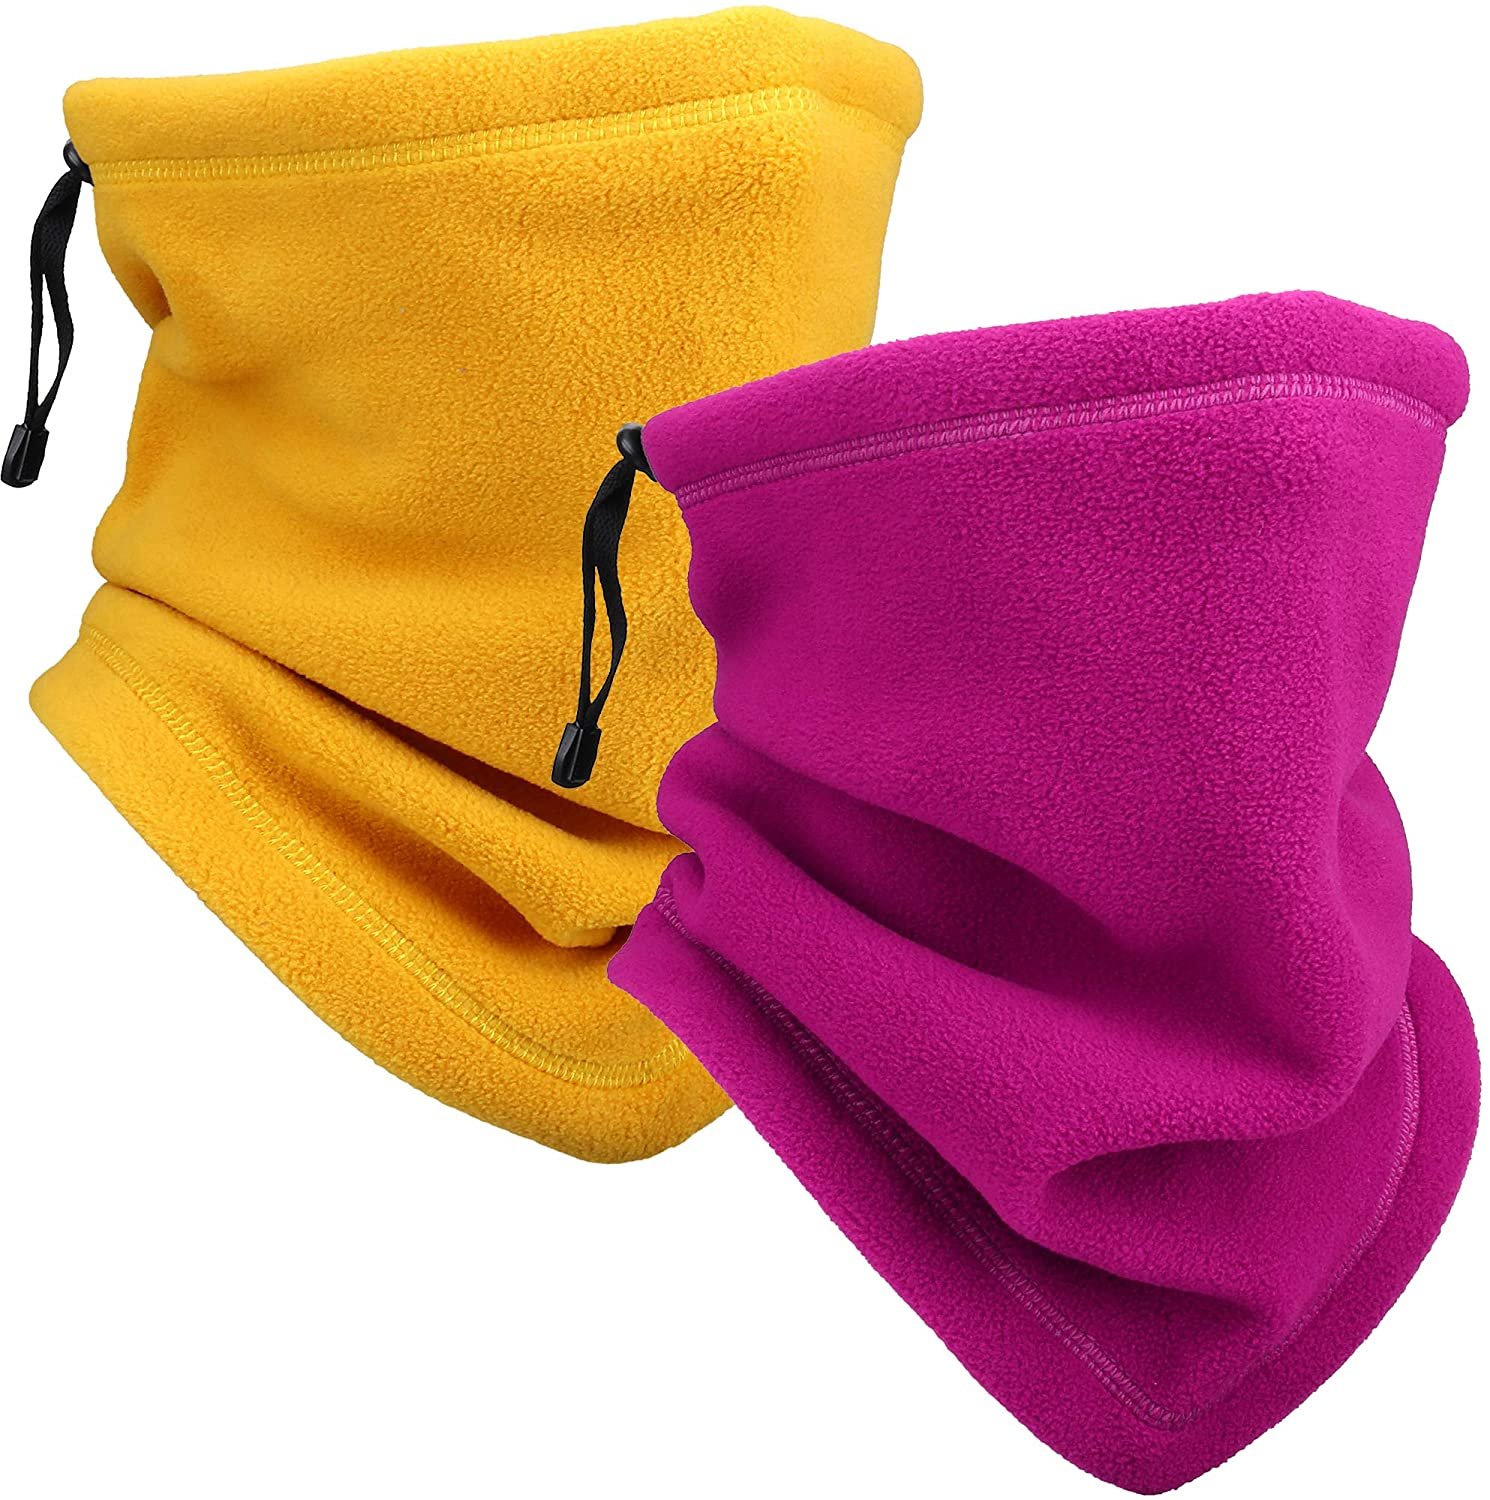 WTACTFUL Thicken Fleece Adjustable Neck Warmer Face Mask for Skiing Snowboarding Winter Outdoor Sports